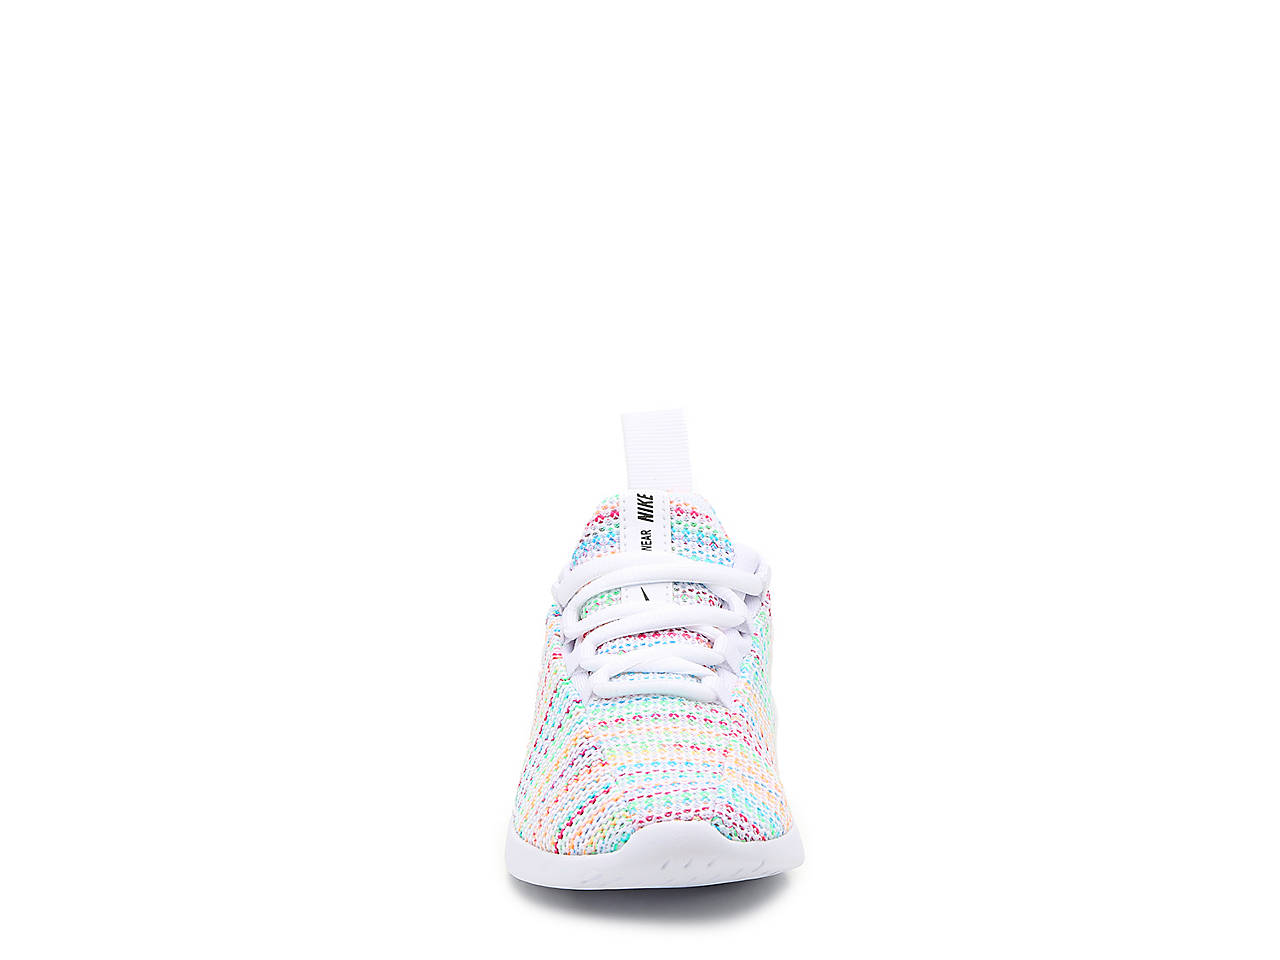 9d644f802eb0 Nike Viale Space Dye Toddler   Youth Sneaker Kids Shoes